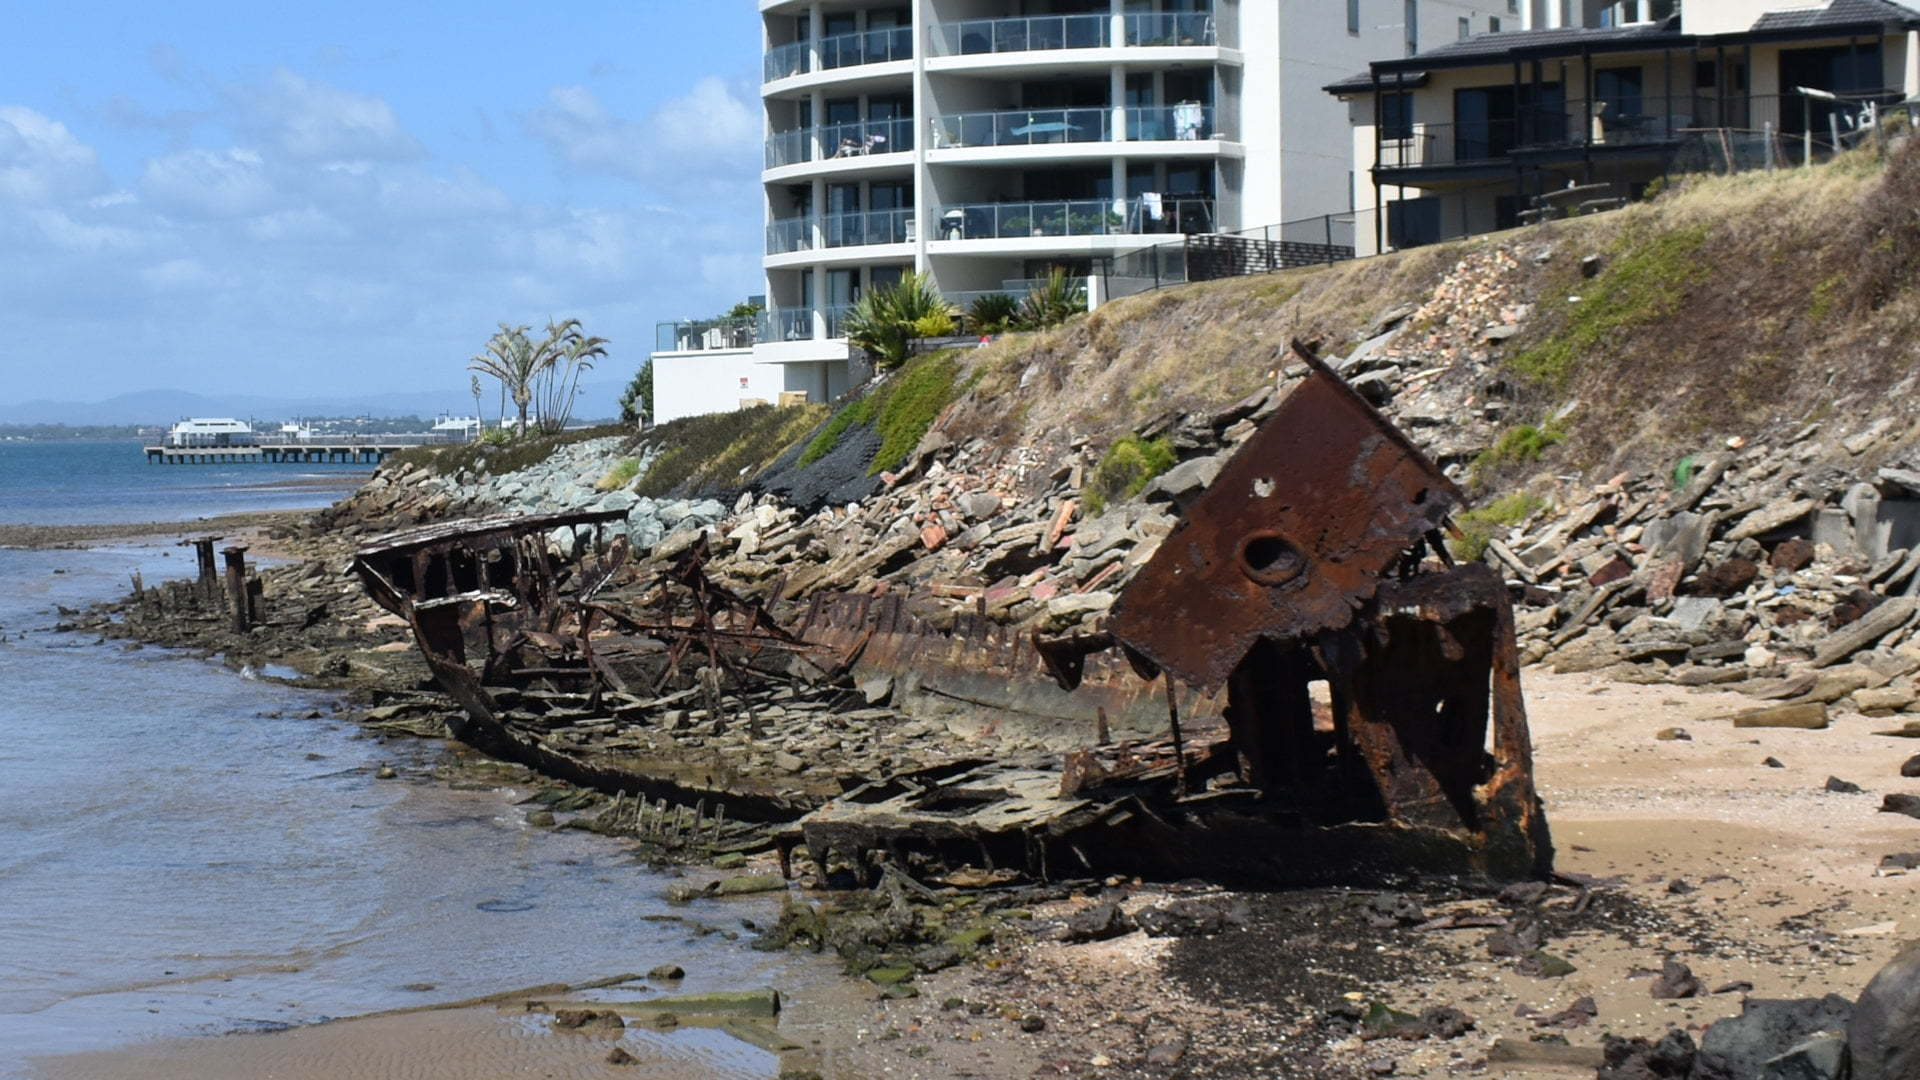 Rusted wreck on a beach near cliffs, the Gayundah Wreck at Woody Point in Redcliffe